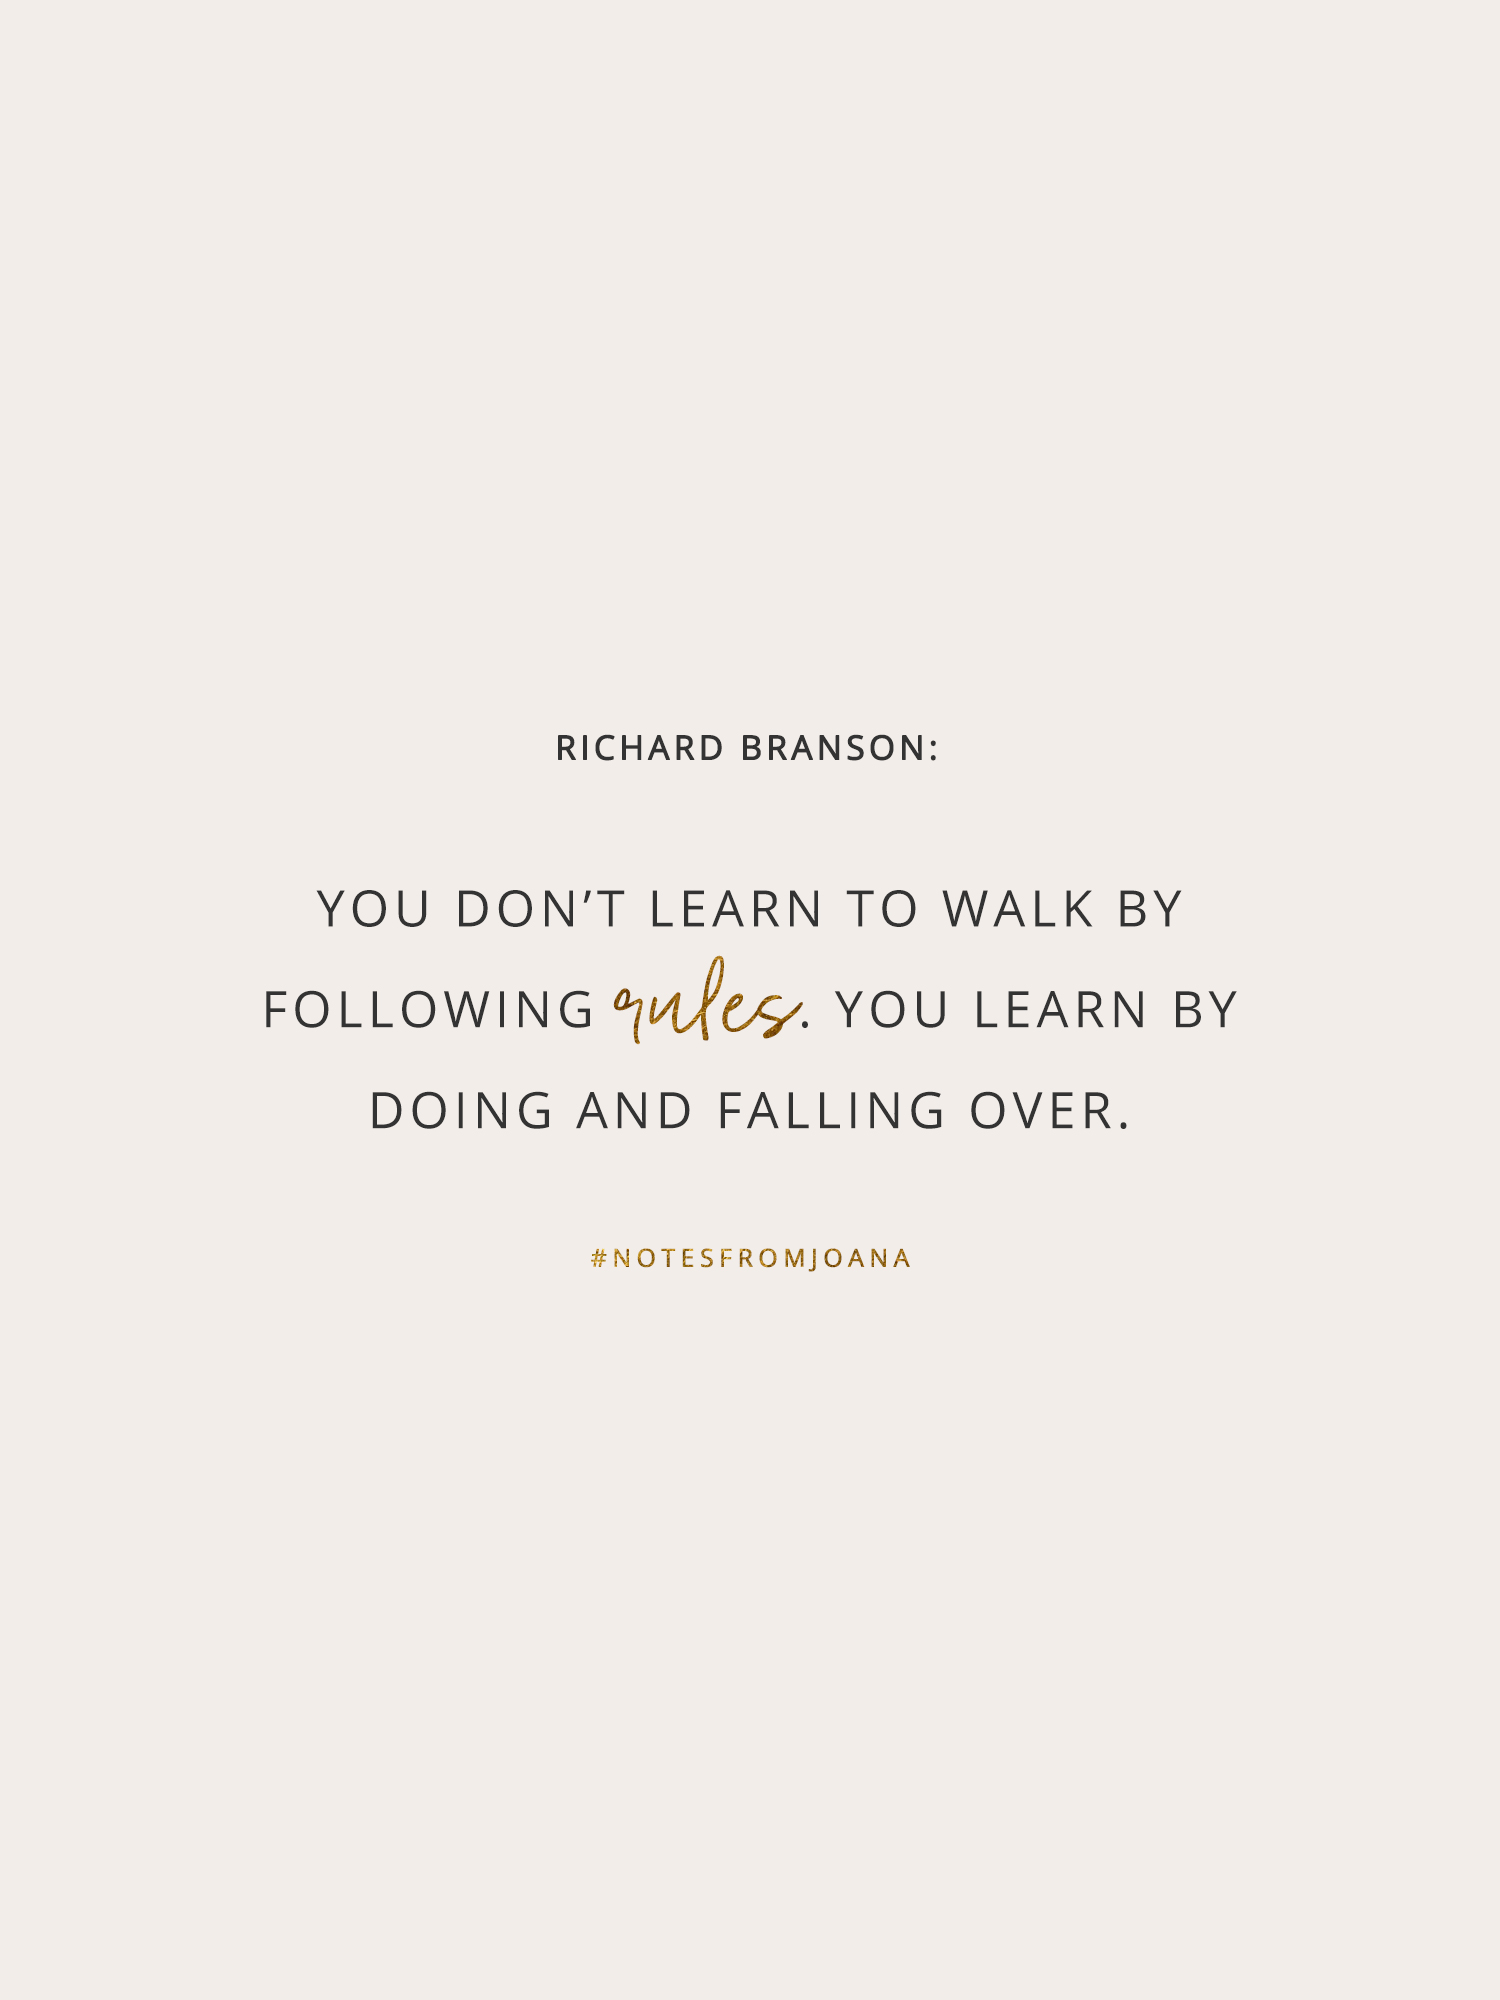 20 Inspirational Quotes To Help You Become Your Best Self. You don't learn to walk by following rules. You learn by doing and falling over. RICHARD BRANSON // Notes from Joana